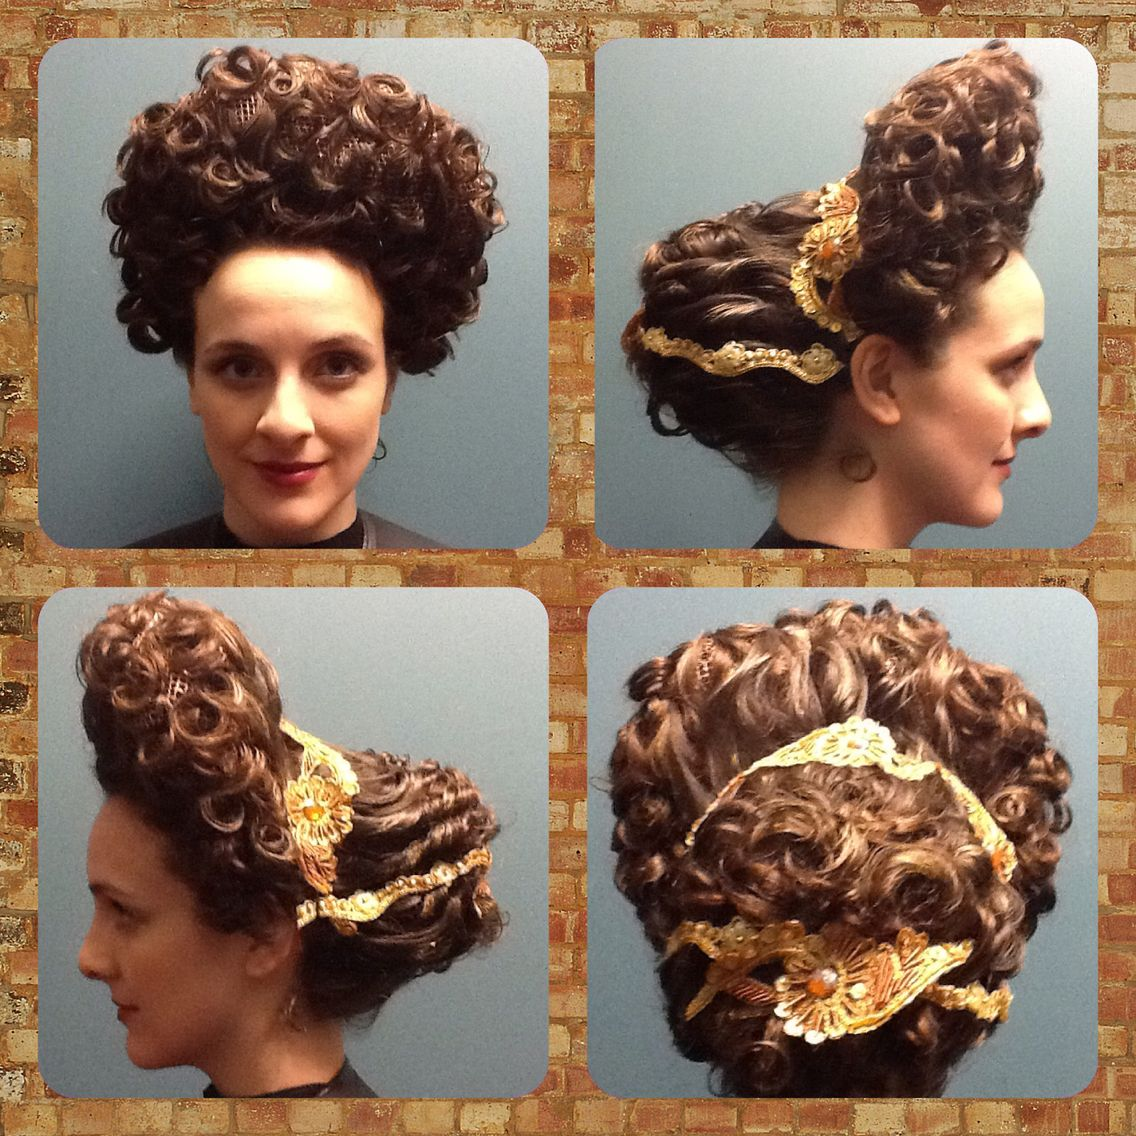 pin by leah bandy on beauty | roman hairstyles, ancient